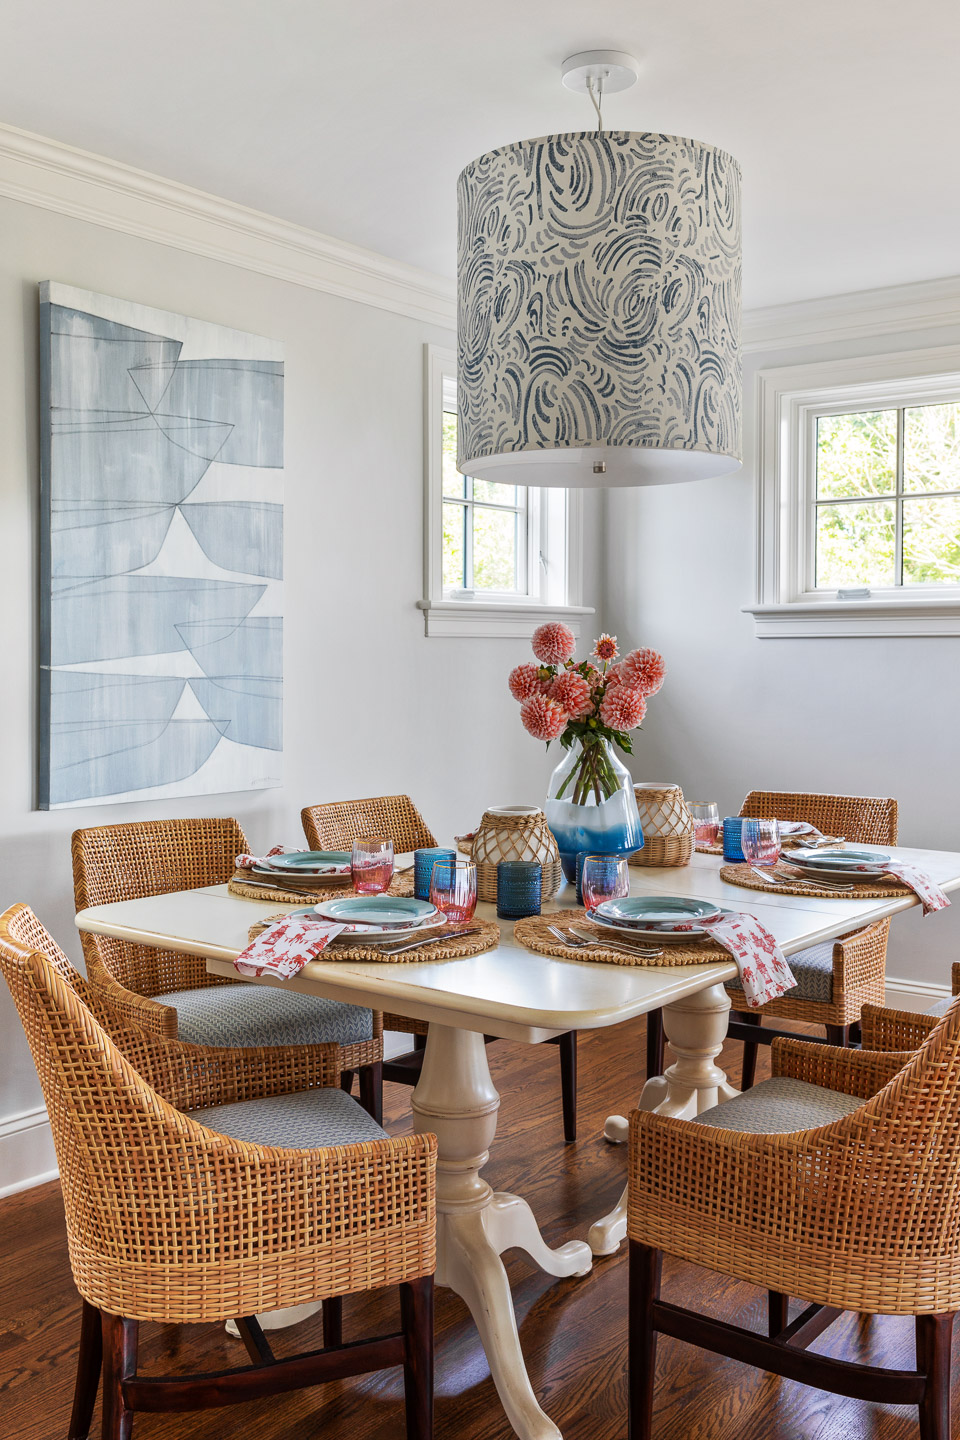 Rhode Island, interior design, interior designer, kitchen design ideas, kitchen table, rattan chairs